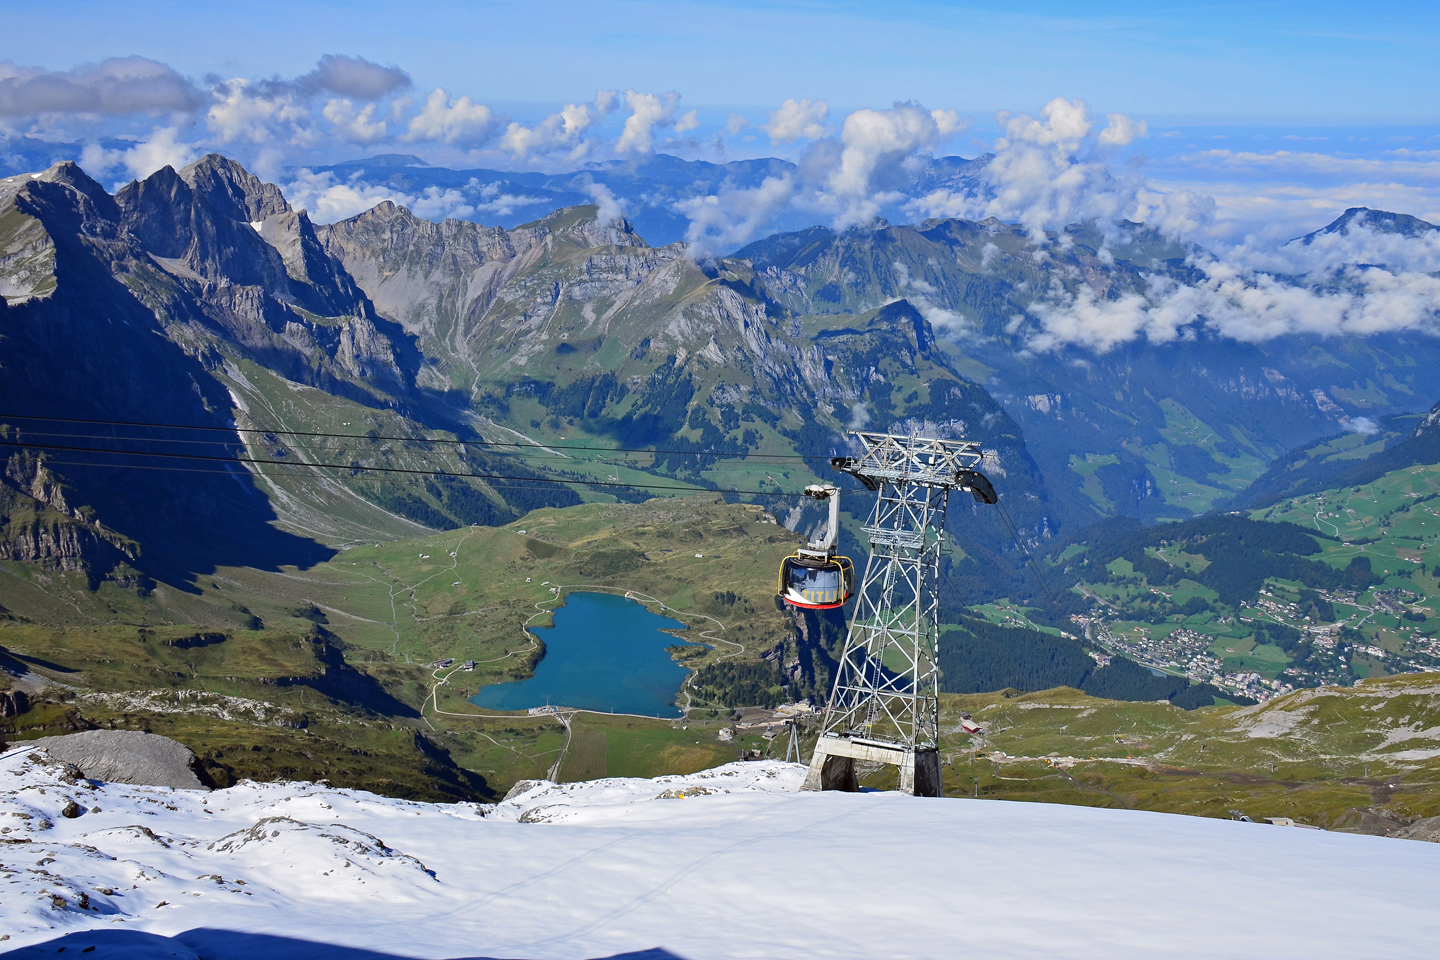 Titlis cable car over a mountain landscape with lake truebsee, one of the highlights of Switzerland